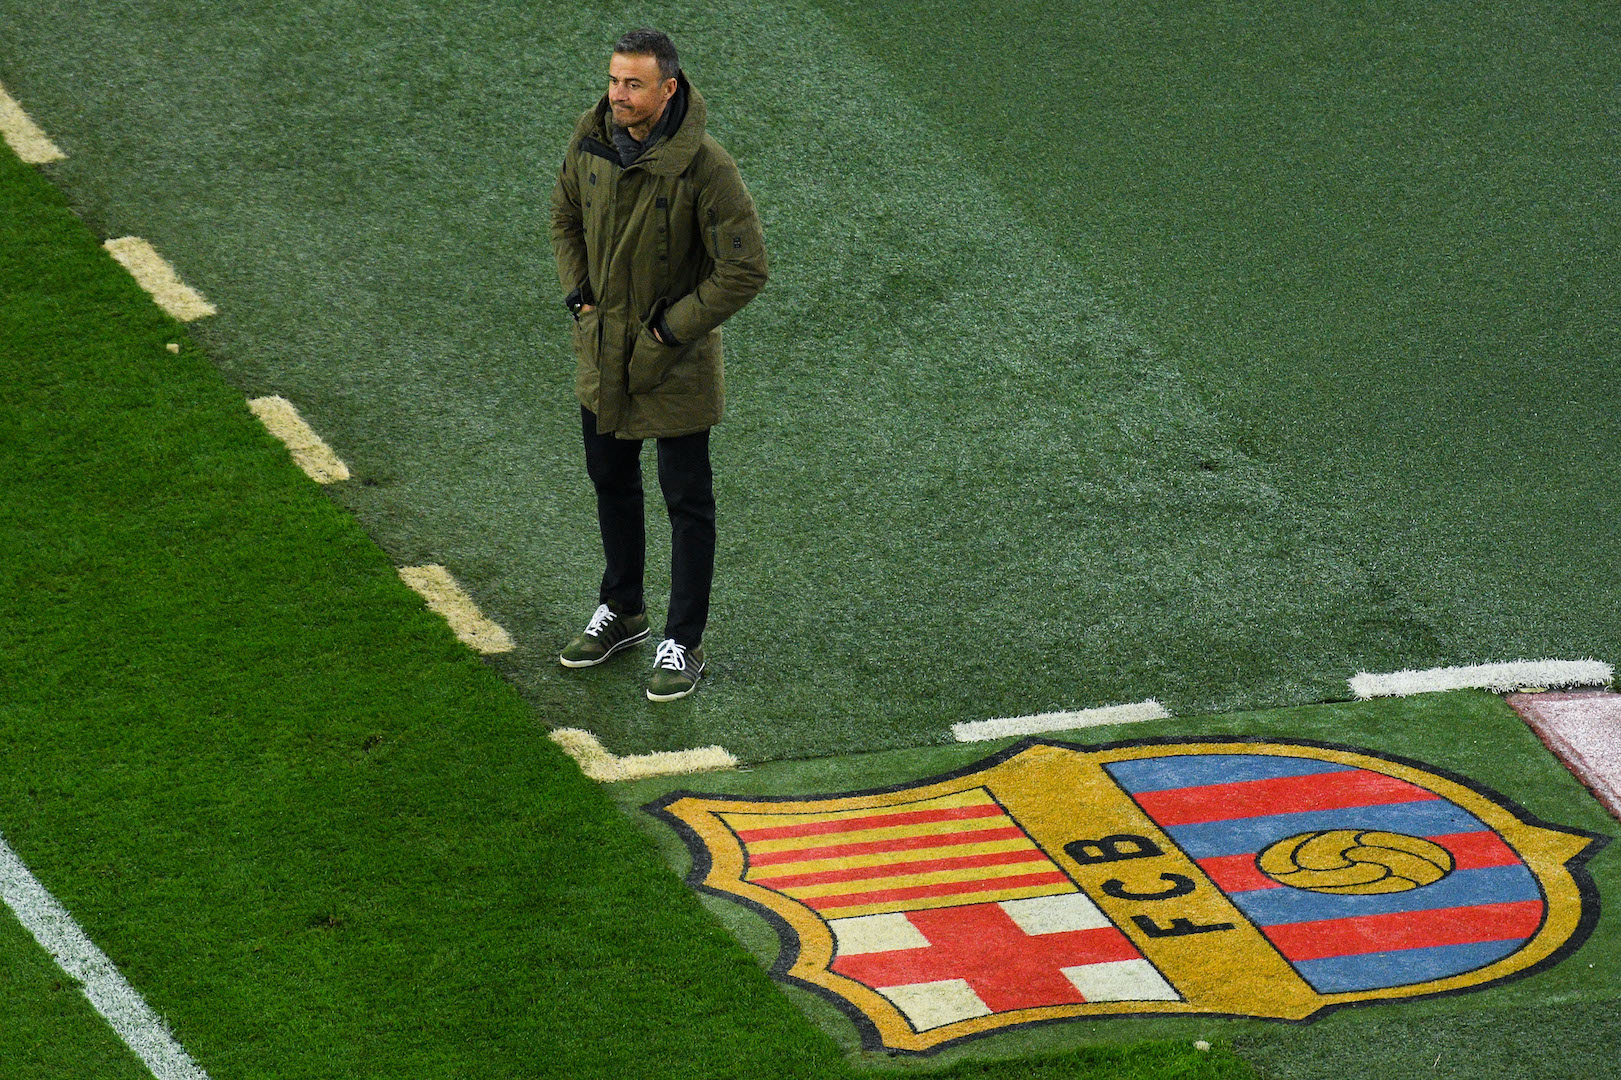 BARCELONA, SPAIN - DECEMBER 21: Head coach Luis Enrique of FC Barcelona looks on during the Copa del Rey round of 32 second leg match between FC Barcelona and Hercules at Camp Nou on December 21, 2016 in Barcelona, Spain. (Photo by David Ramos/Getty Images)